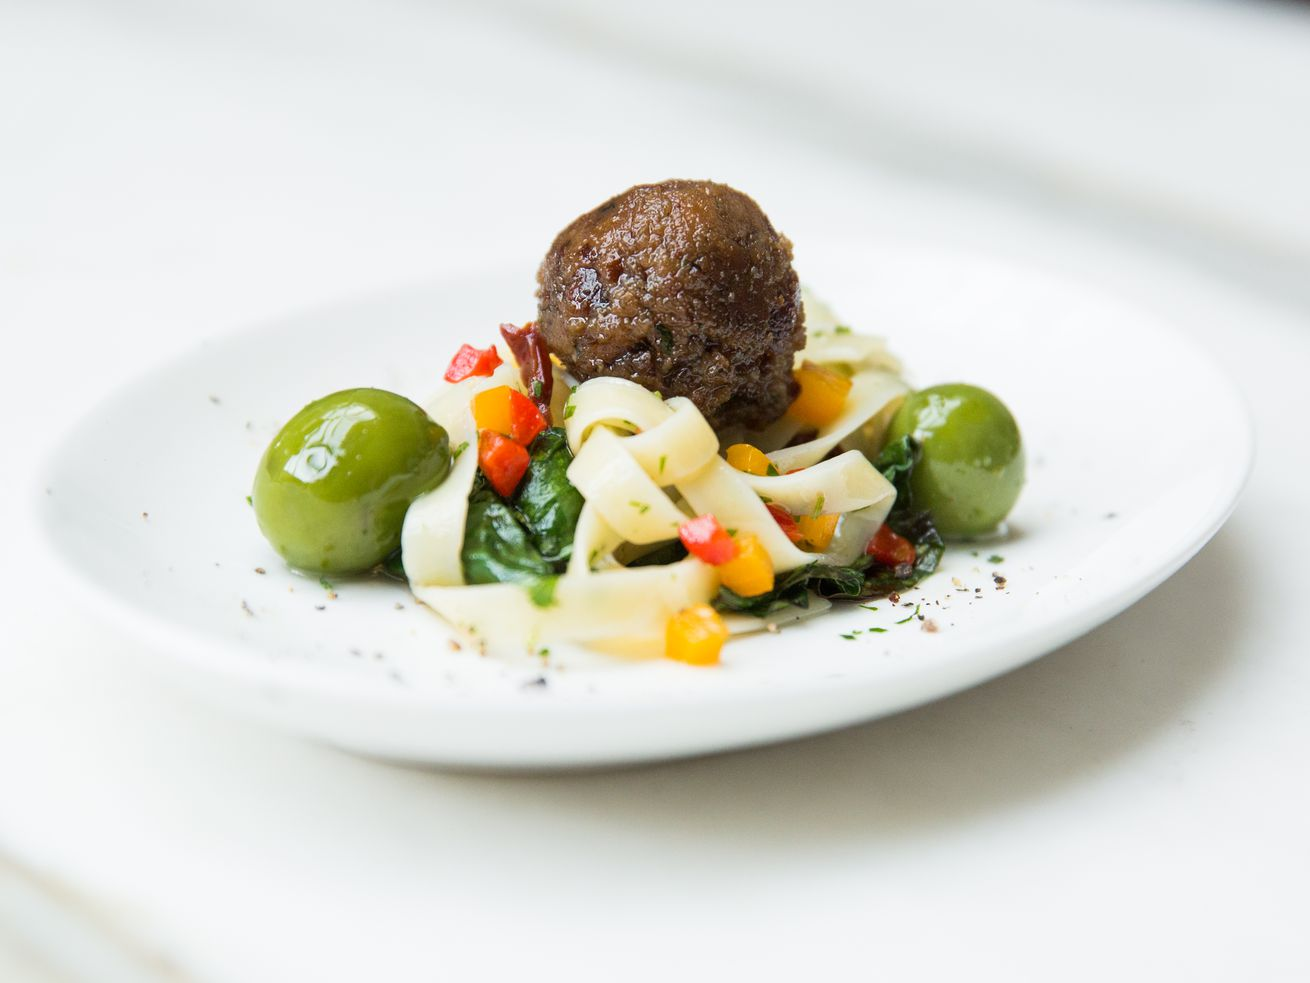 Memphis Meats' cell-based meatball was produced in a lab.